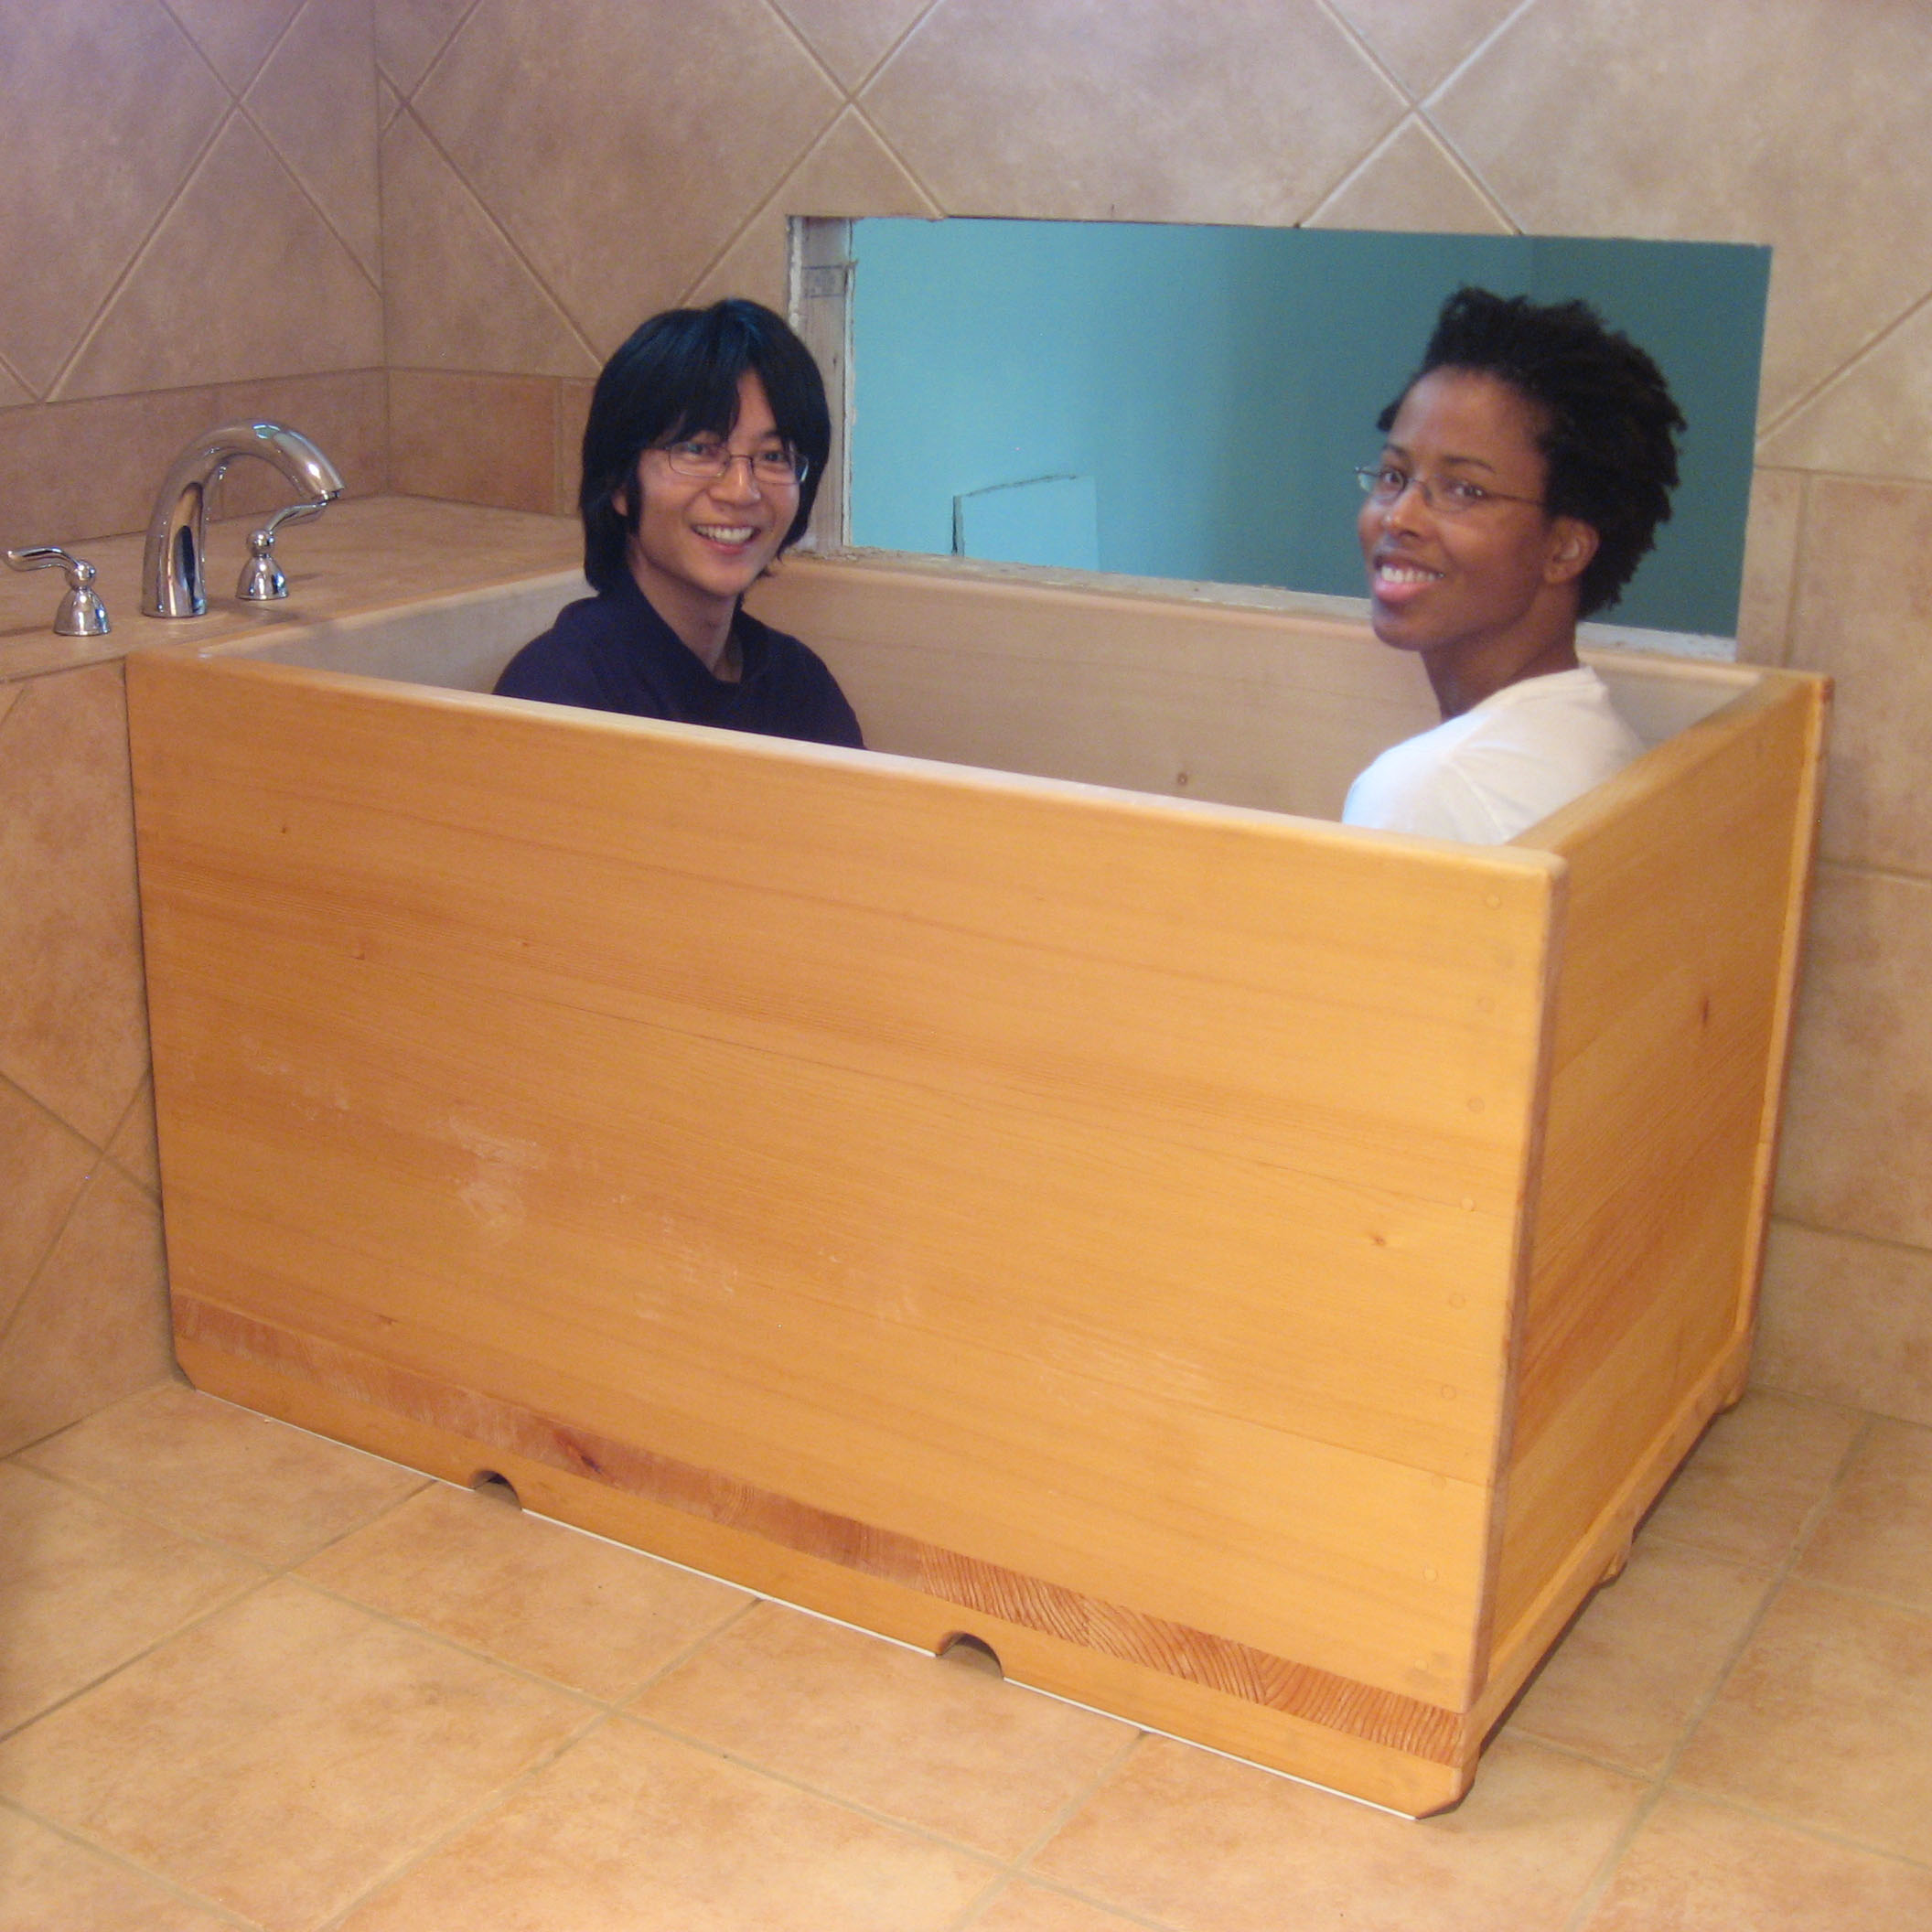 common the vibrant hinoki japanese properties p bathtub dimensions modern tub etc ofuro yabai all about